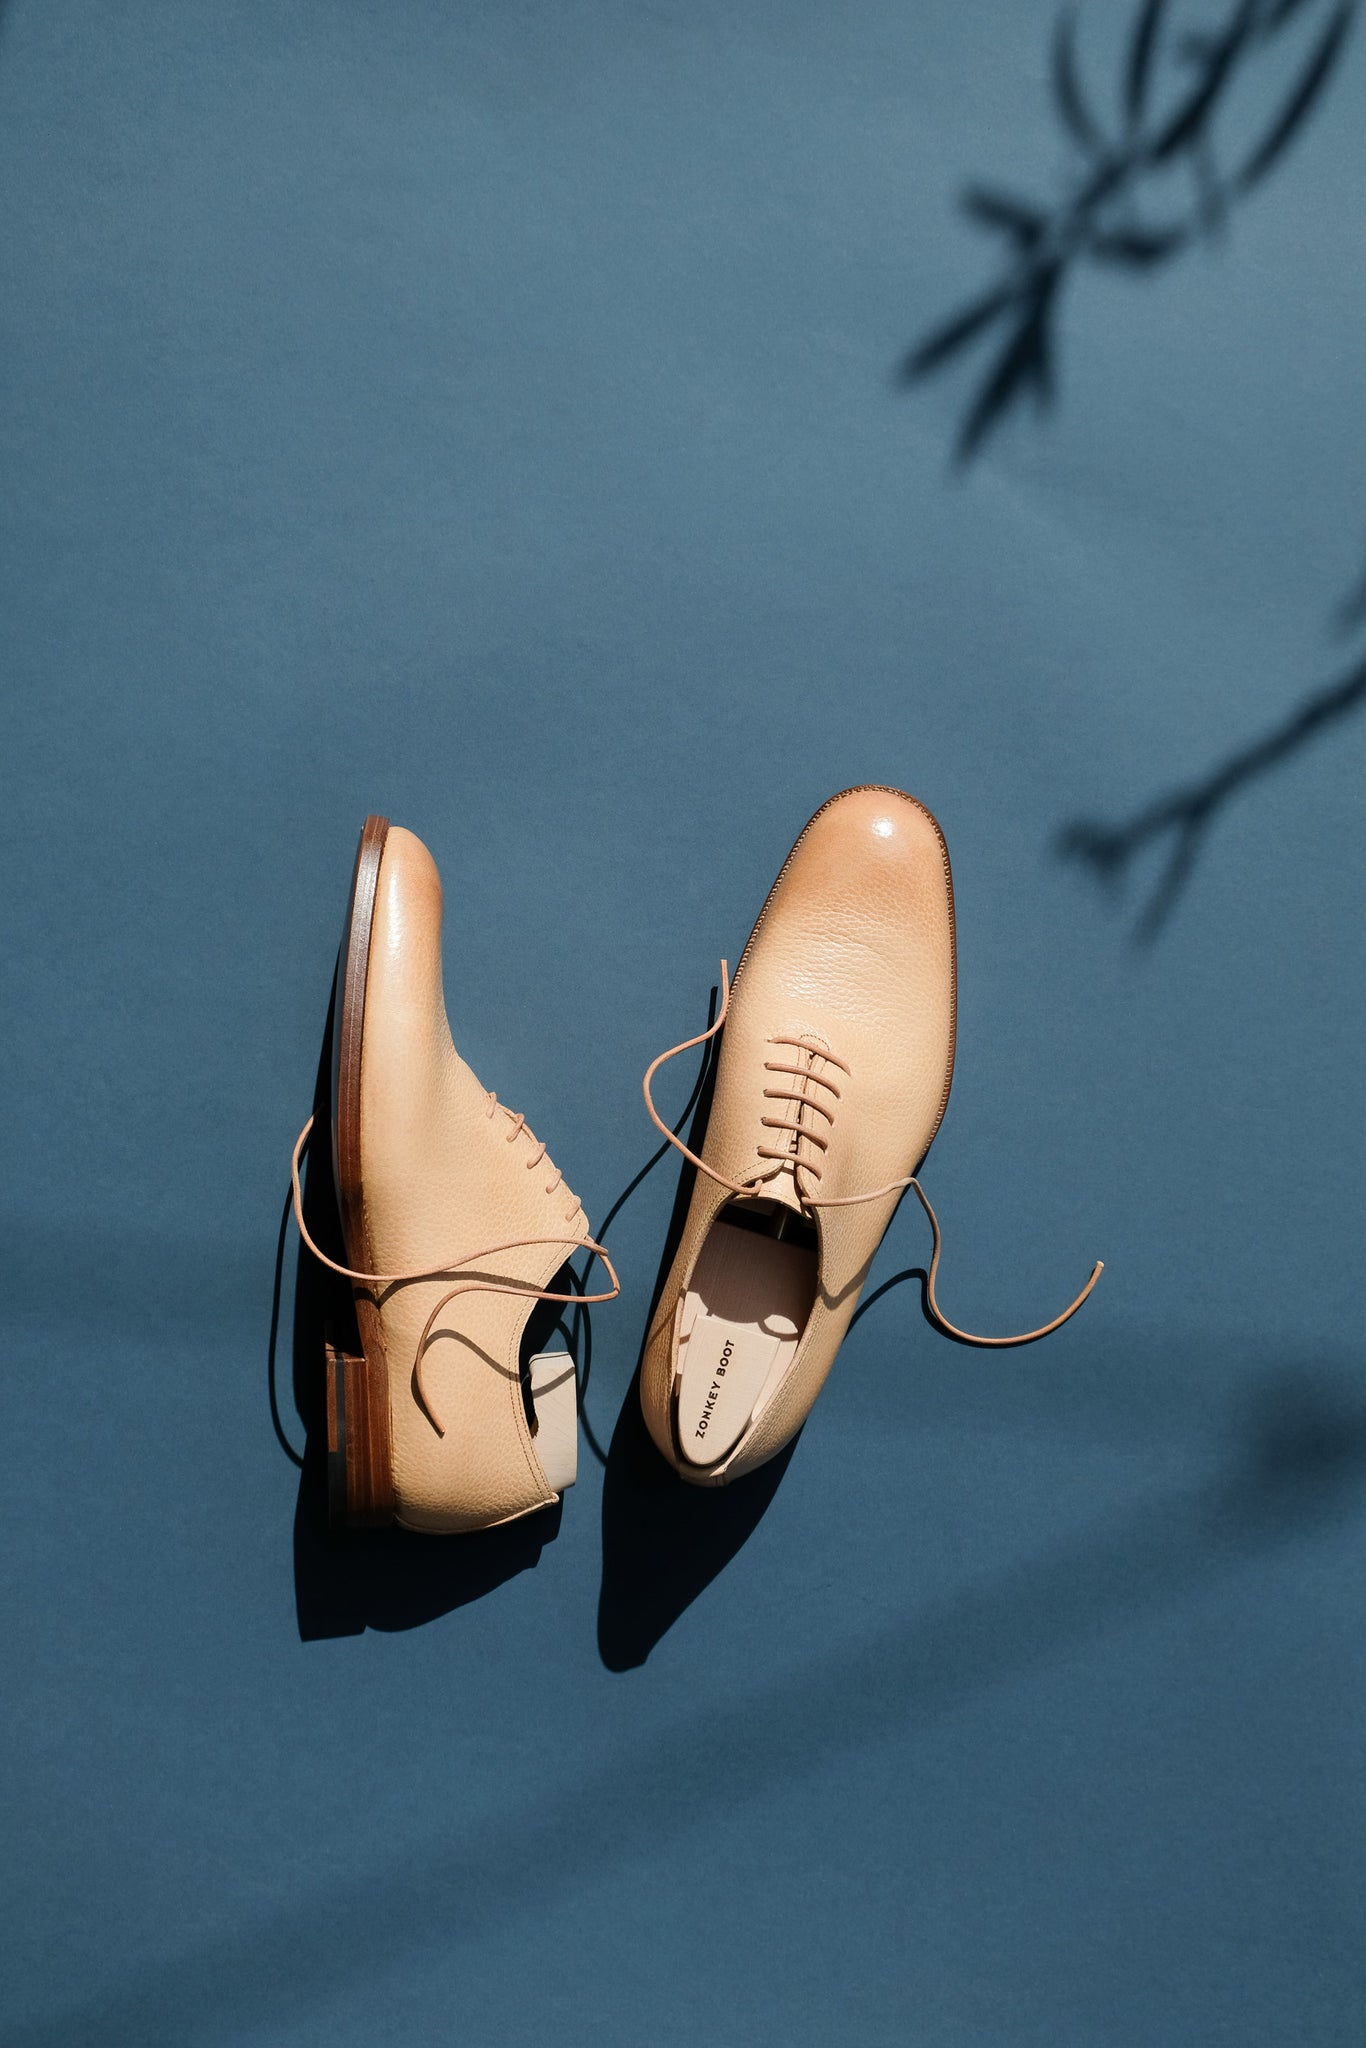 Zonkey Boot hand welted wholecut oxfords in vegetable tanned calf leather